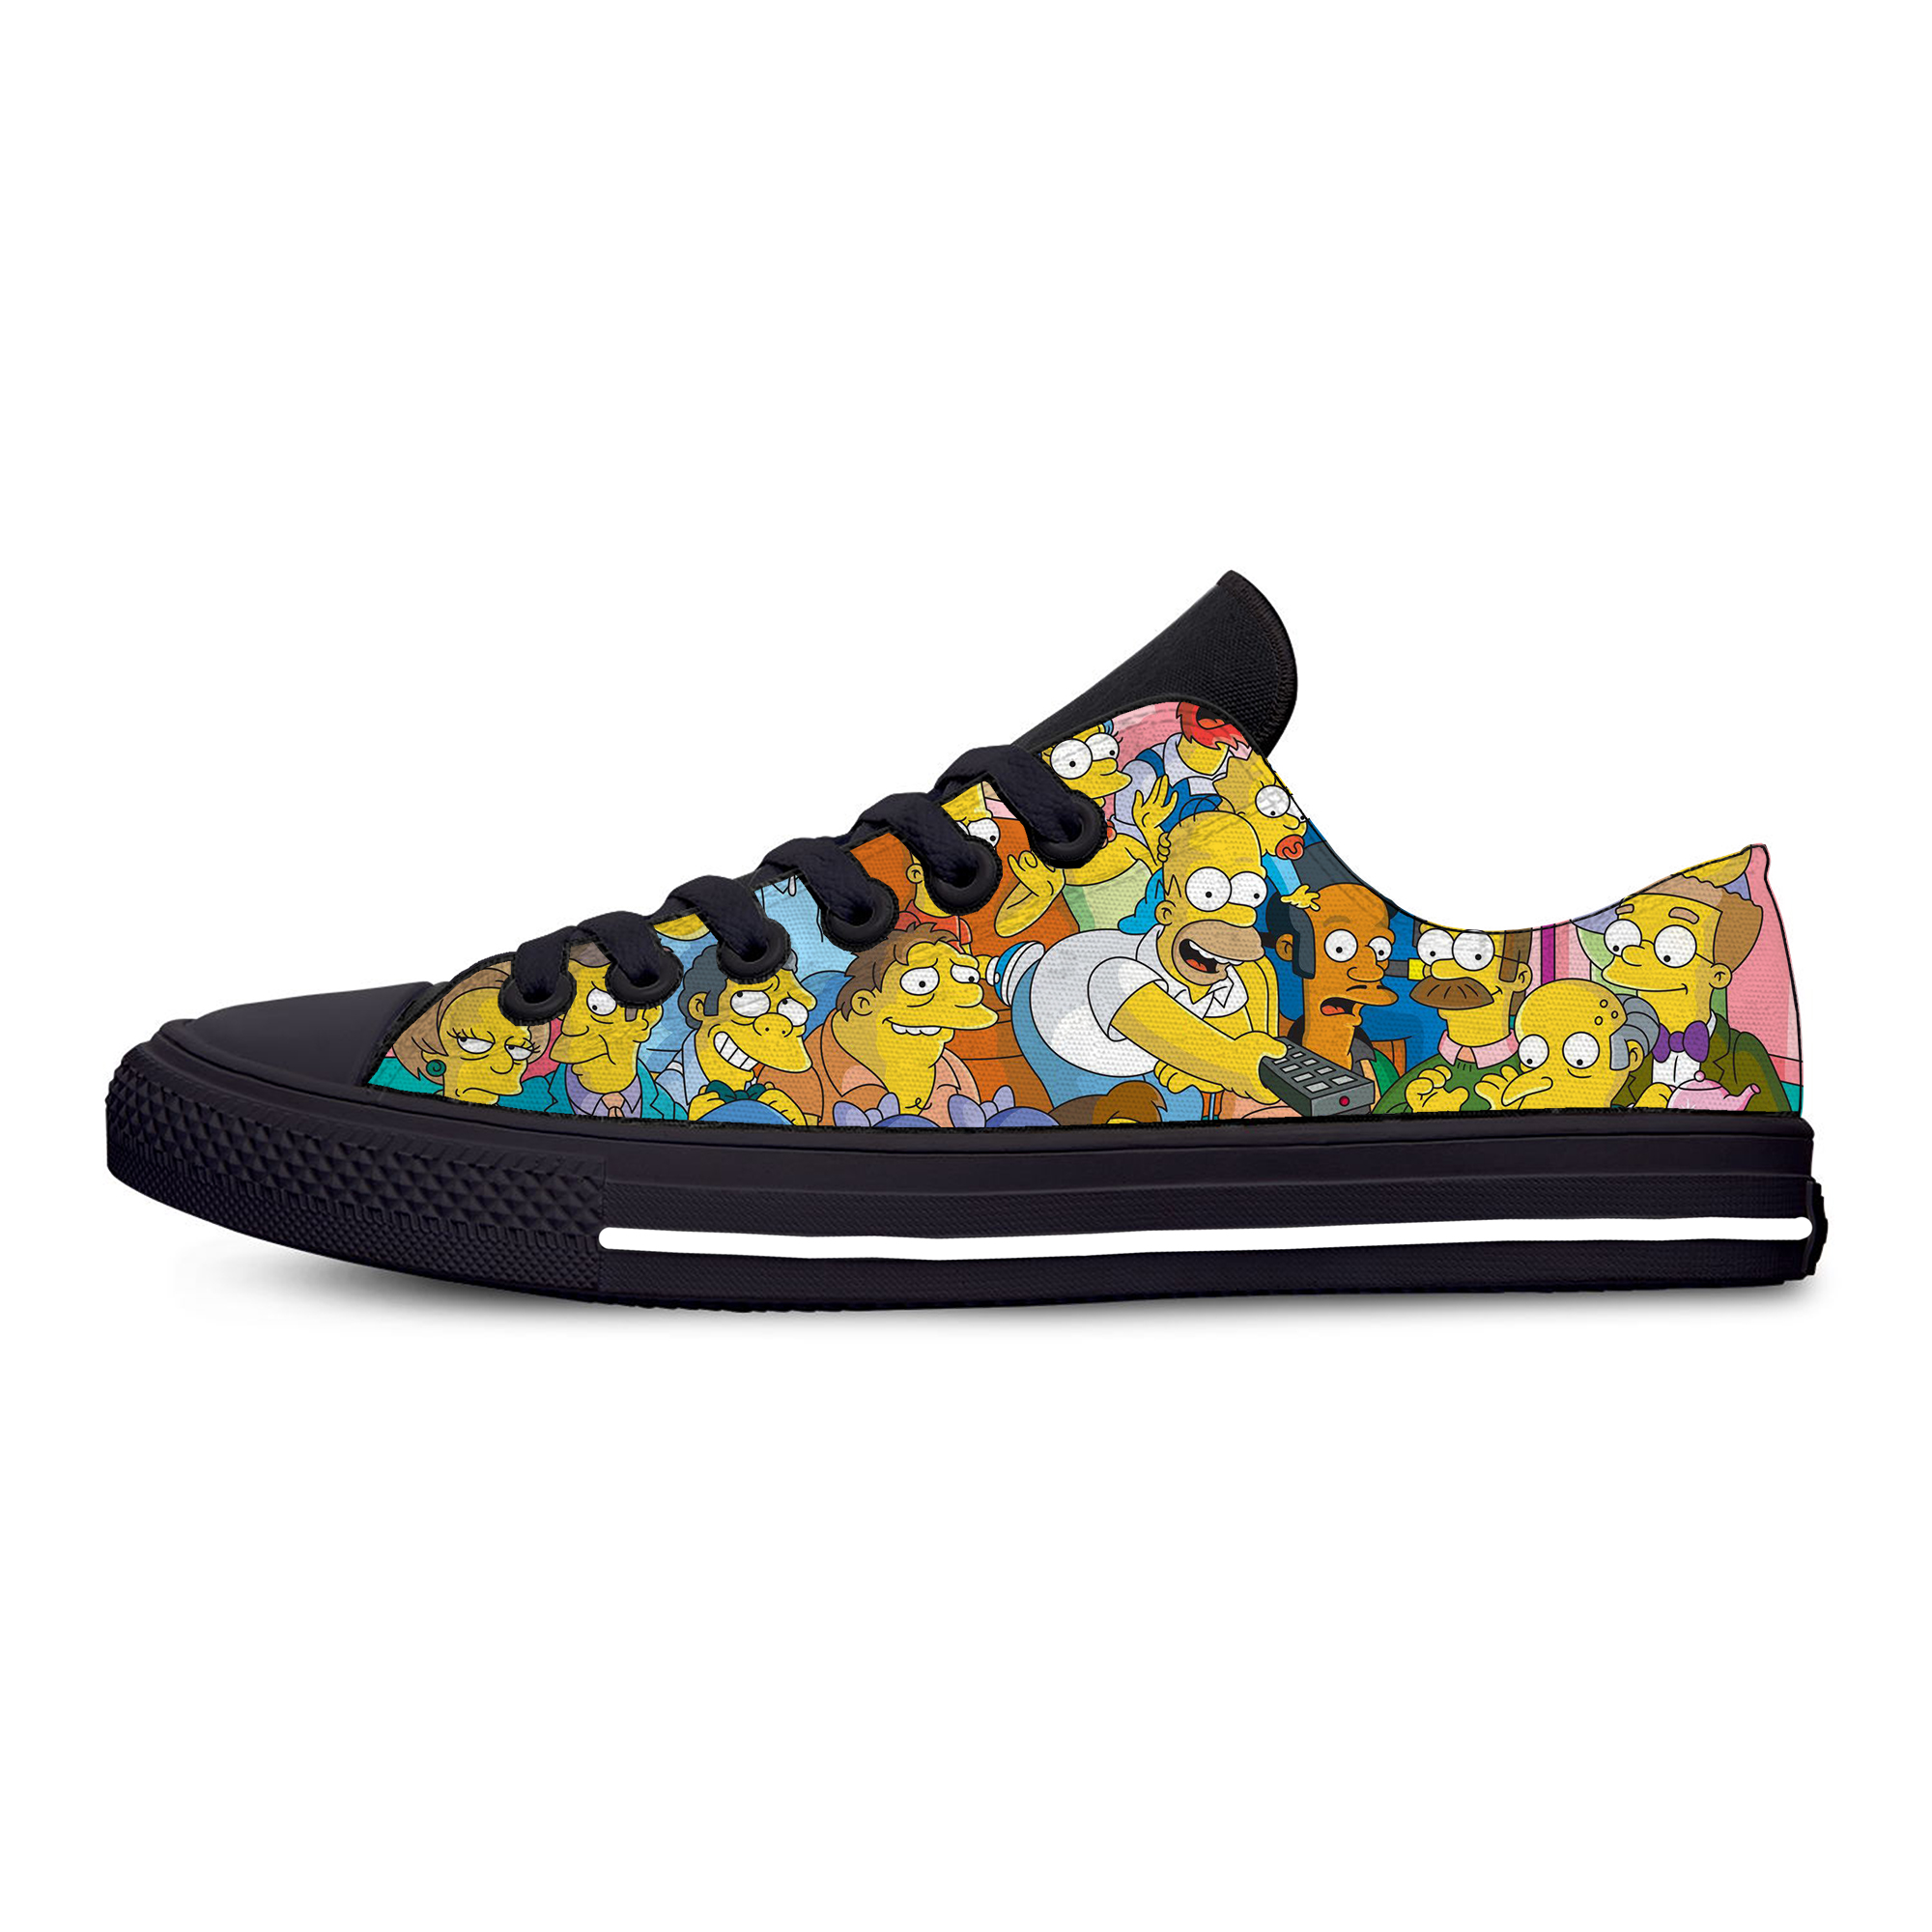 Anime Cartoon Simpson Hot Fashion Funny Humor Casual Canvas Shoes Low Top Lightweight Breathable 3D Printed Men Women Sneakers